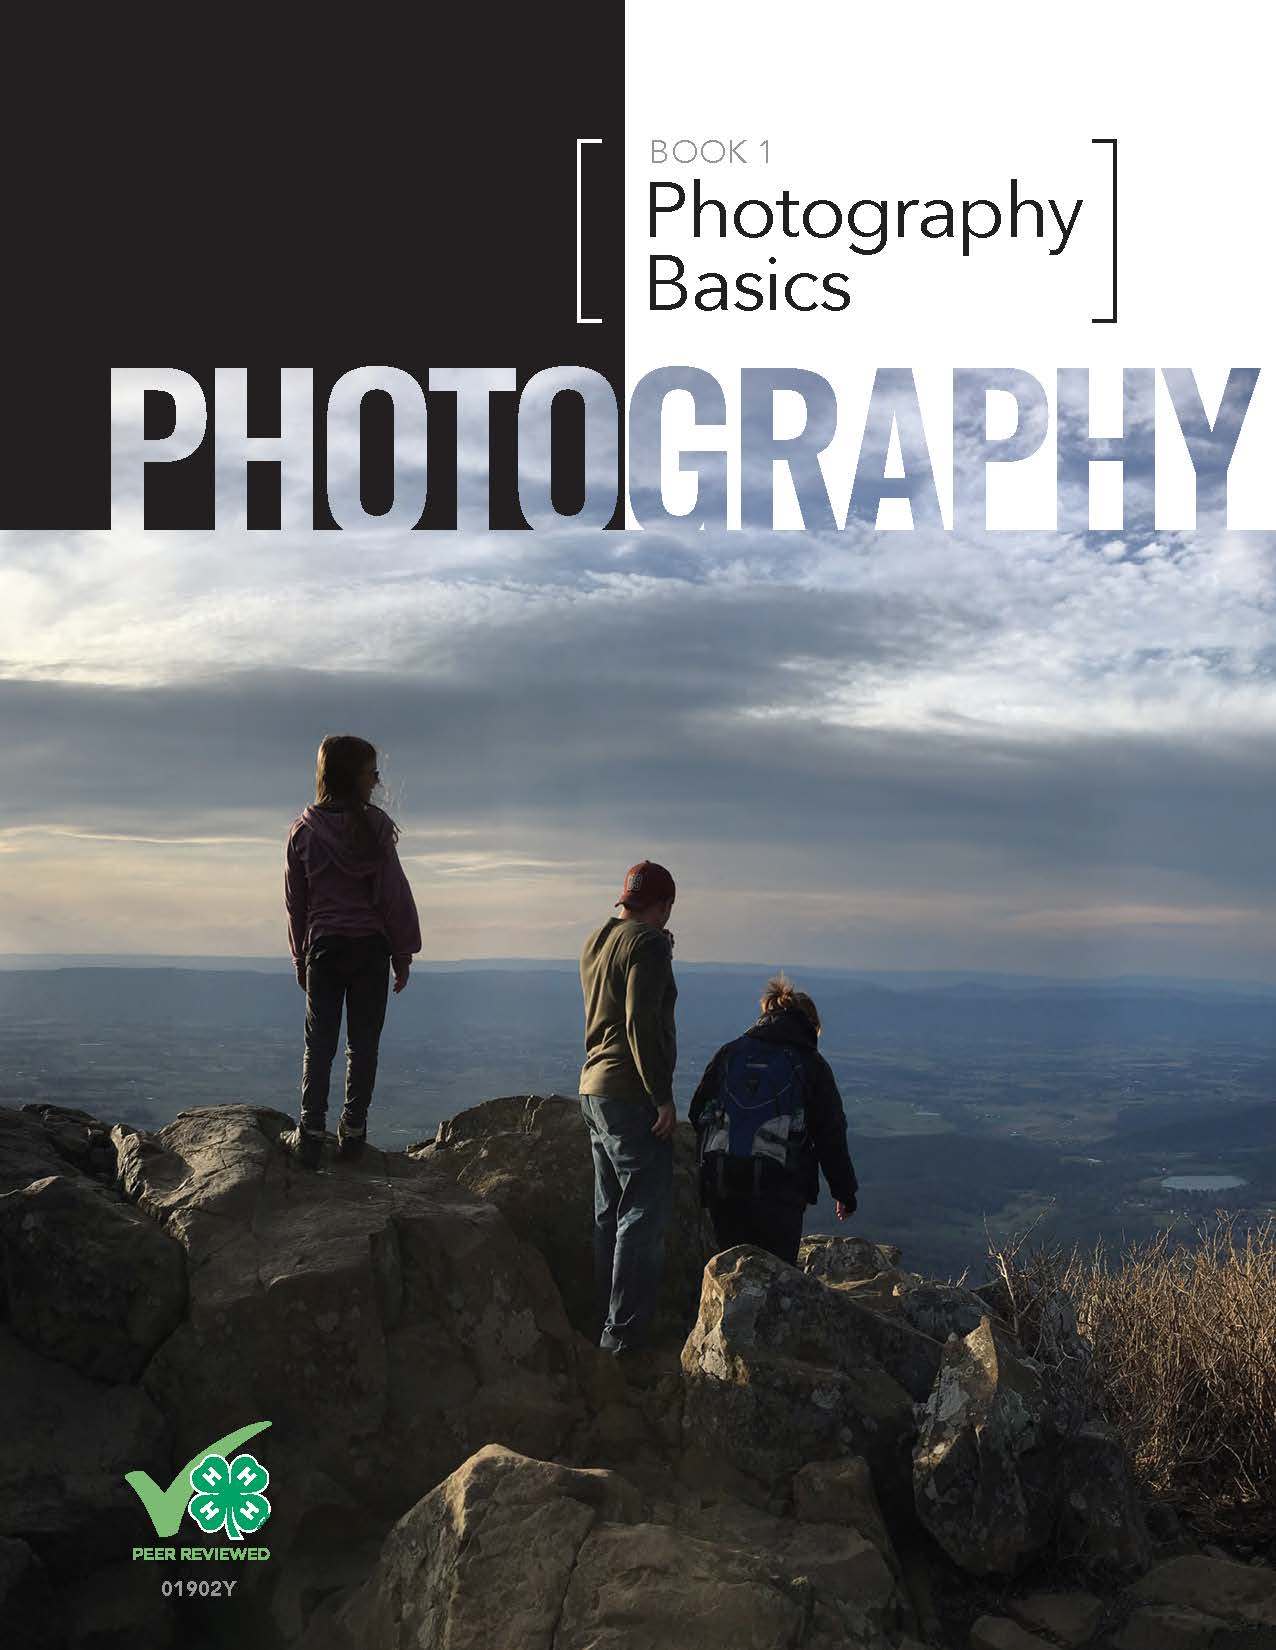 A 4-H photography book cover